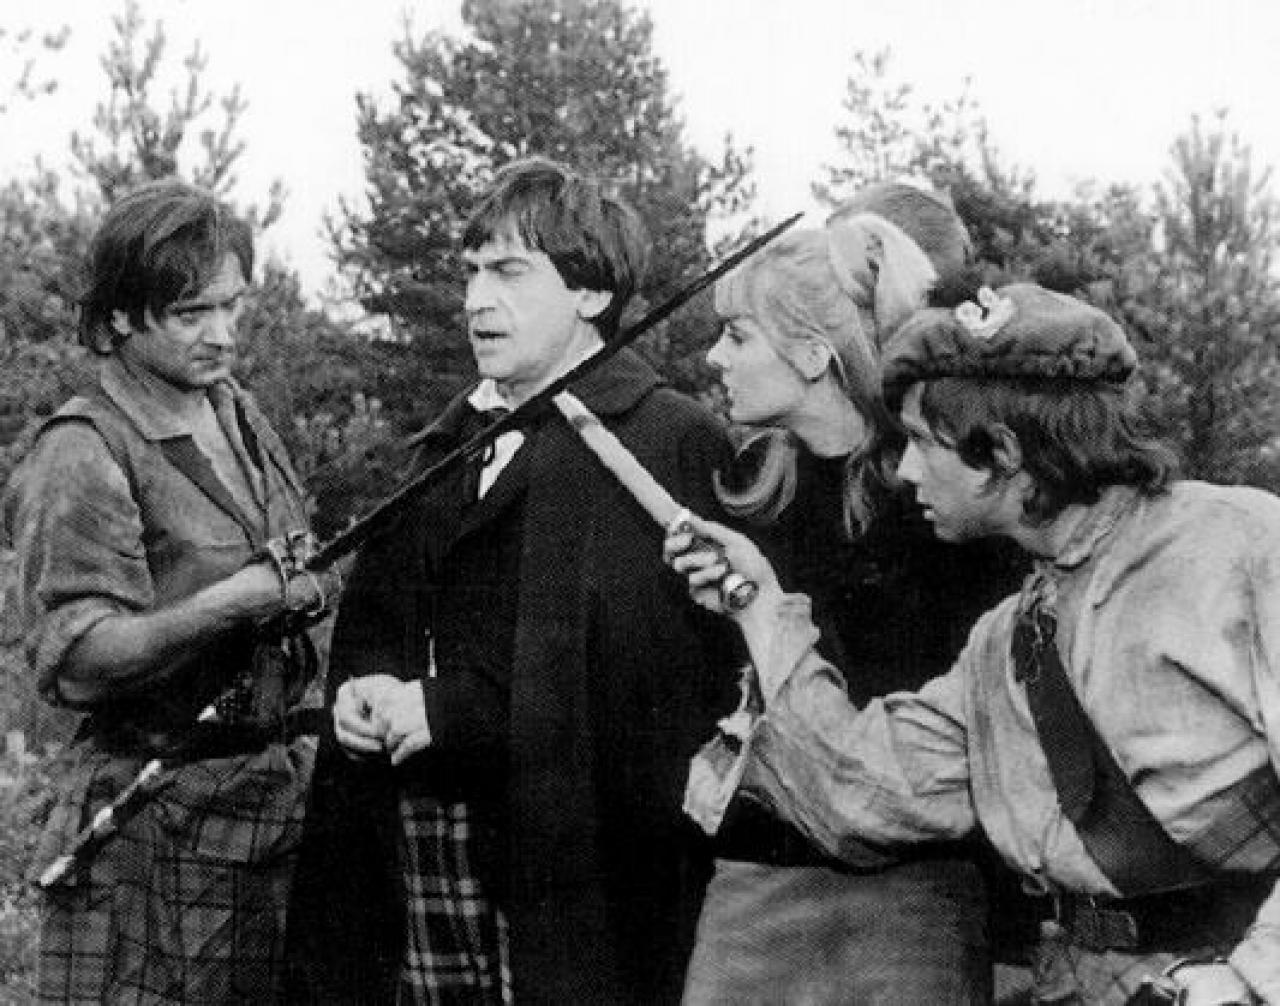 Doctor Who - The Highlanders (c) BBC